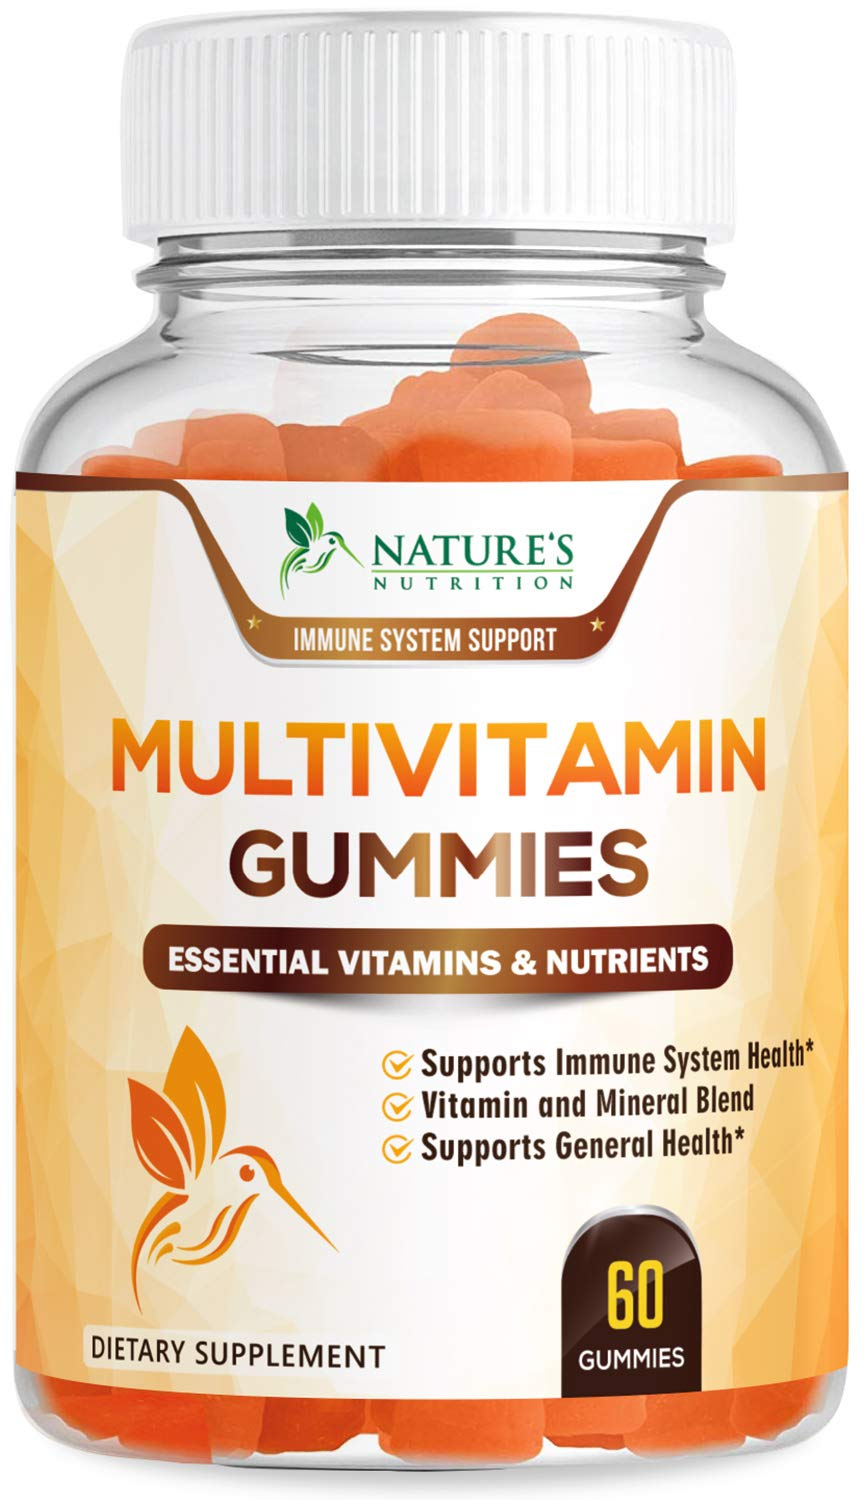 Multivitamin Gummies High Potency Adult Vitamin Gummy - Natural Complete Daily Supplement - Made in USA - Best Vegan Multi with Vitamins A, C, E, B6, B12 for Men and Women, Non-GMO - 60 Gummies